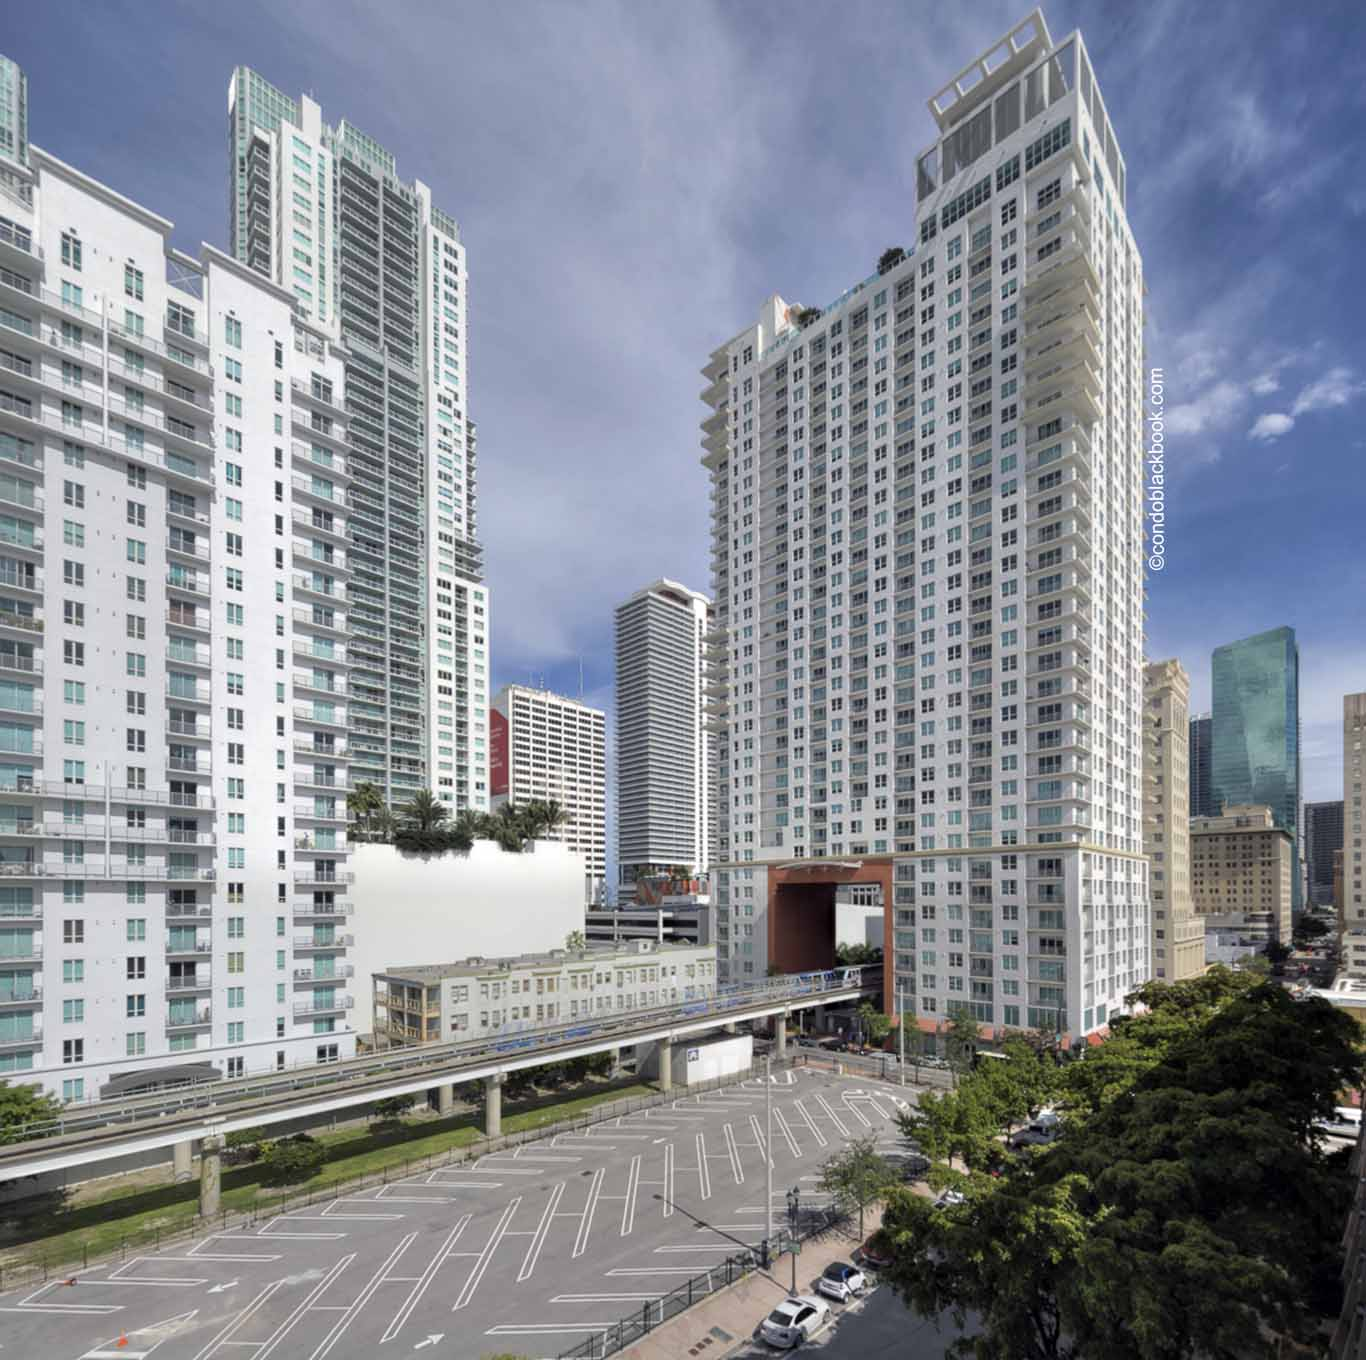 Find Condo For Rent: Search Loft Downtown II Condos For Sale And Rent In